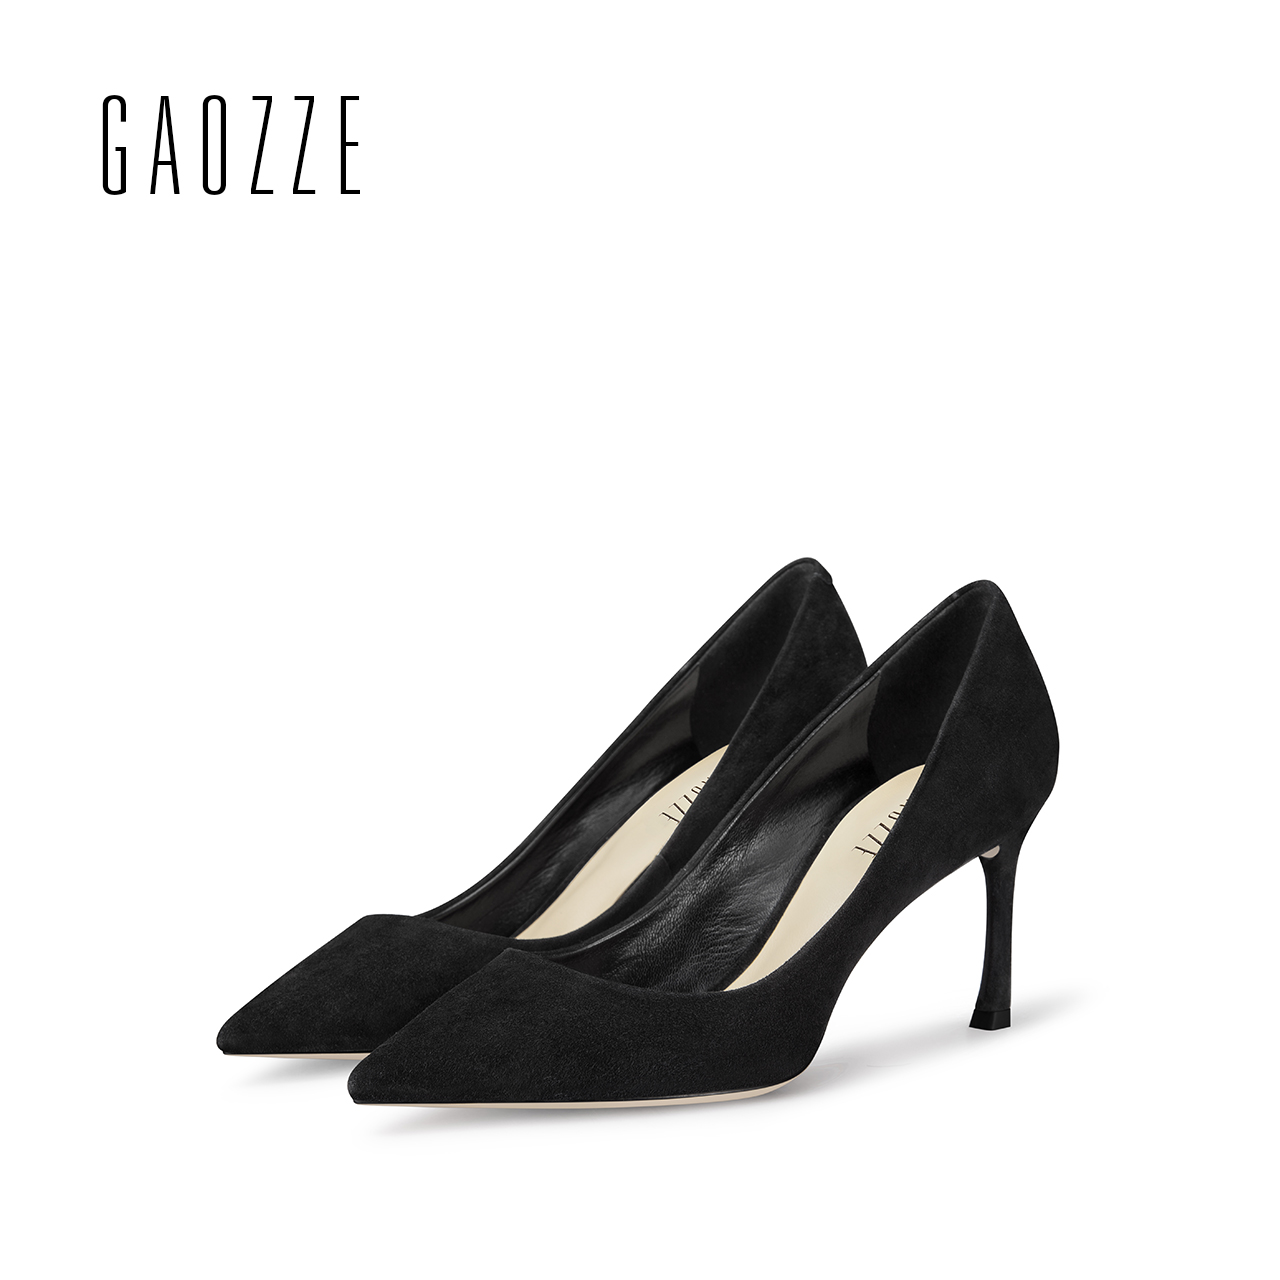 GAOZZE new spring summer Sheep suede leather women shoes pointed toe high heels pump shoes female shallow mouth office shoes 7cm black 2016 wine red navy blue cashmere genuine leather round toe shallow mouth ultra high heels female boots female